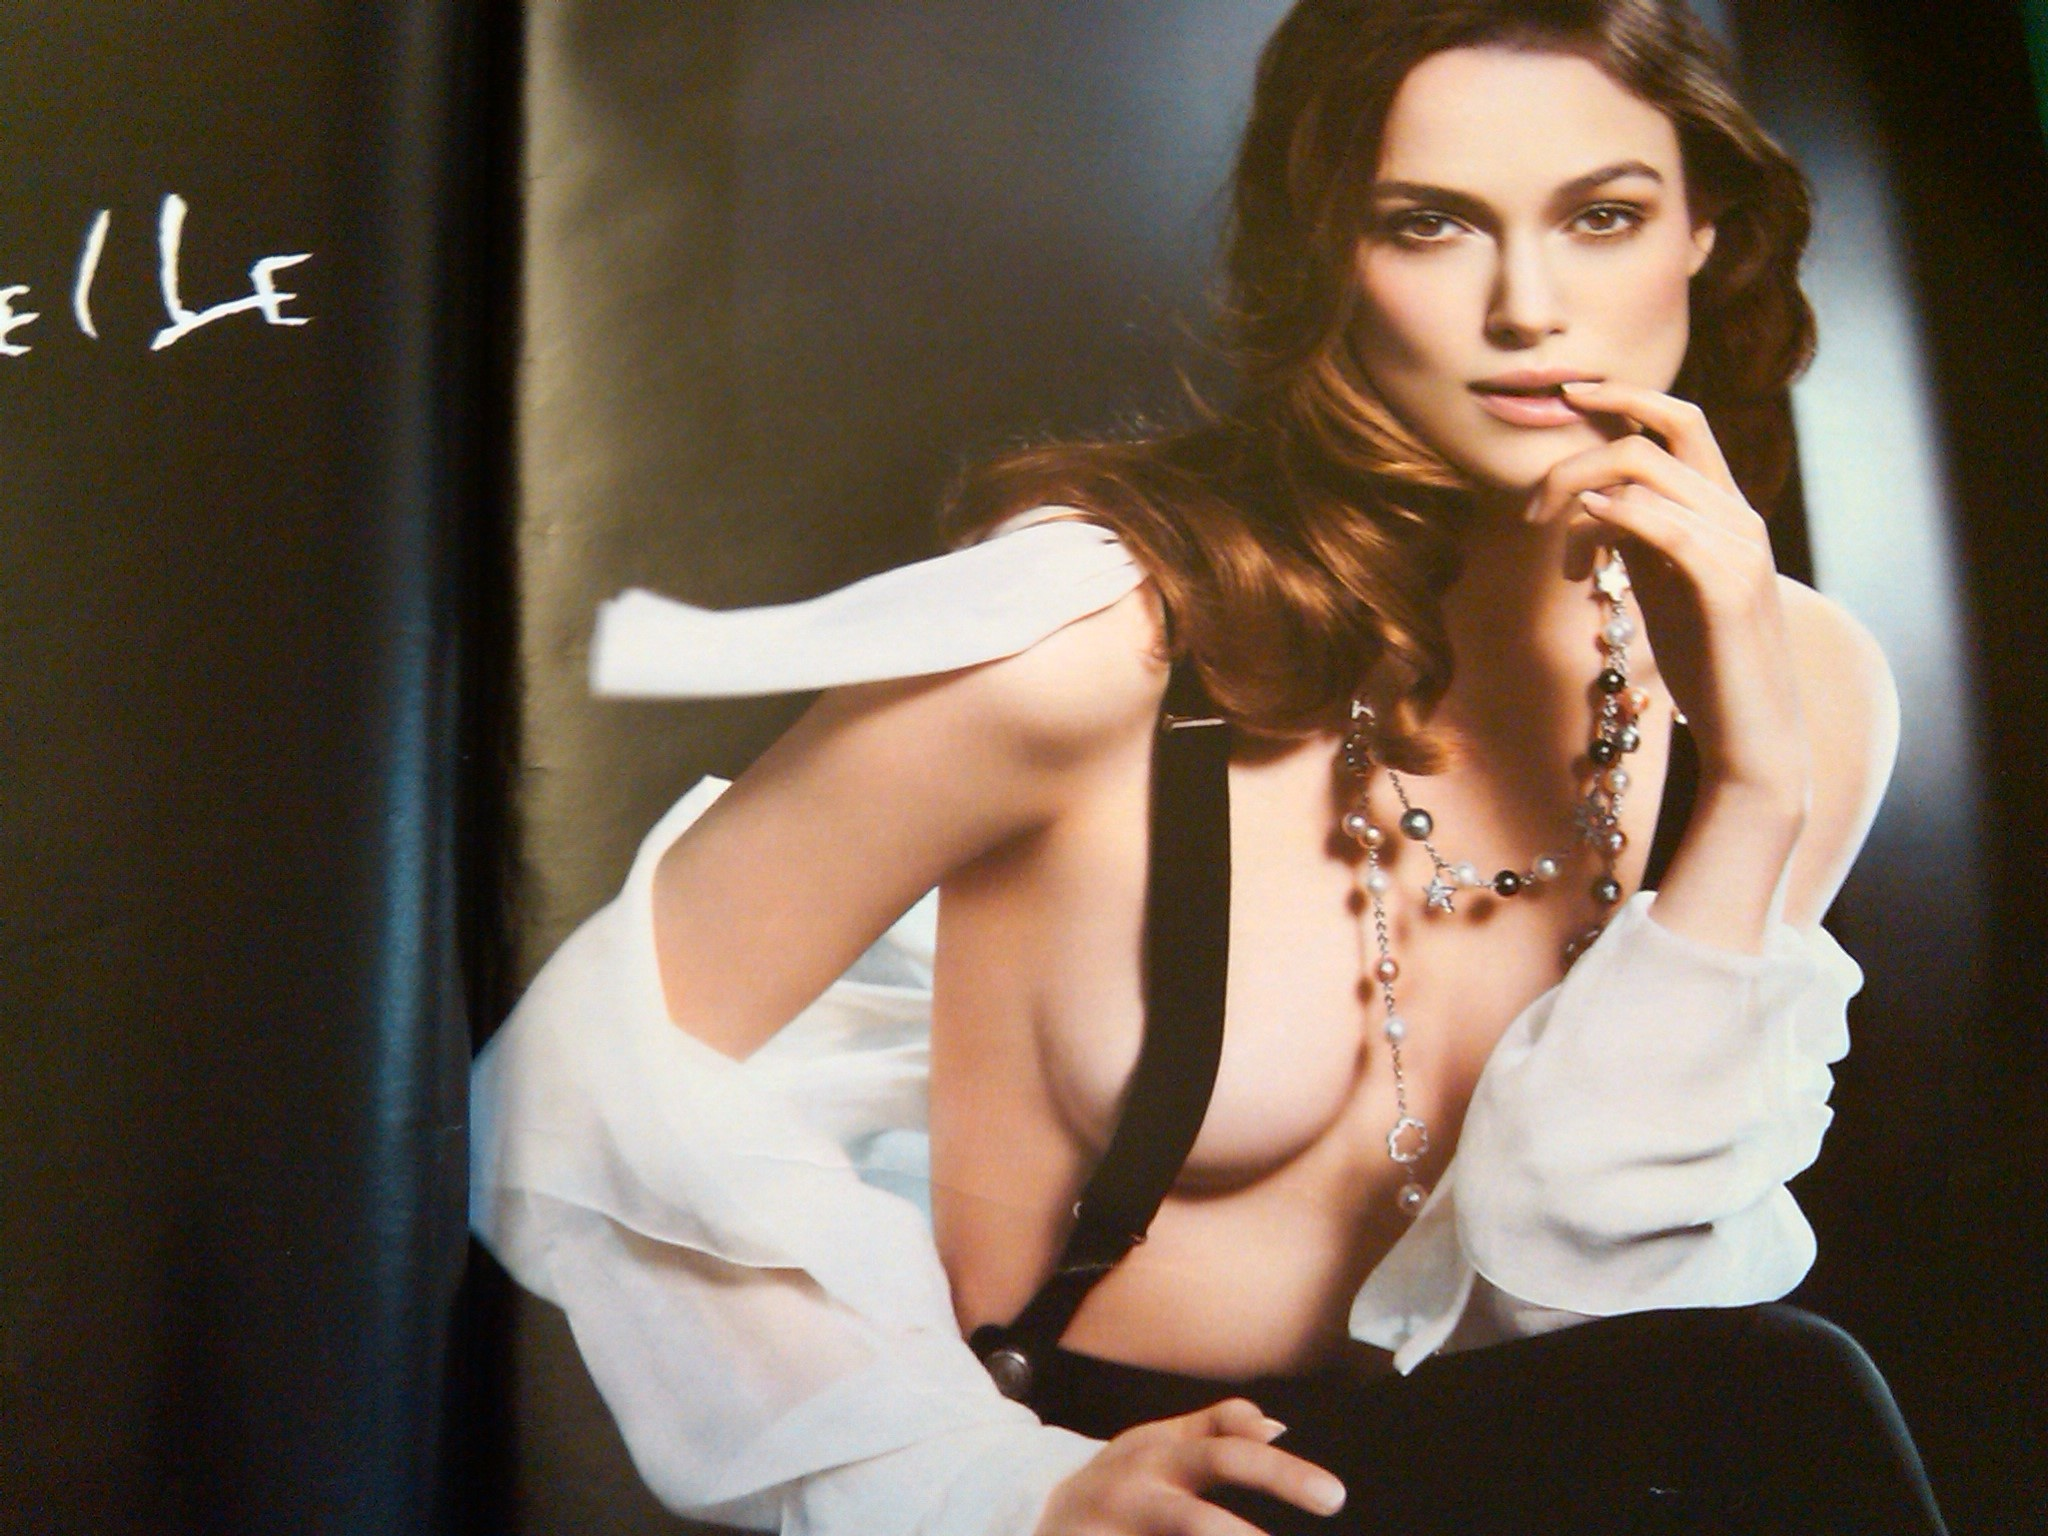 Kiera Knightly for Chanel Mademoiselle - love the shirtless suspenders